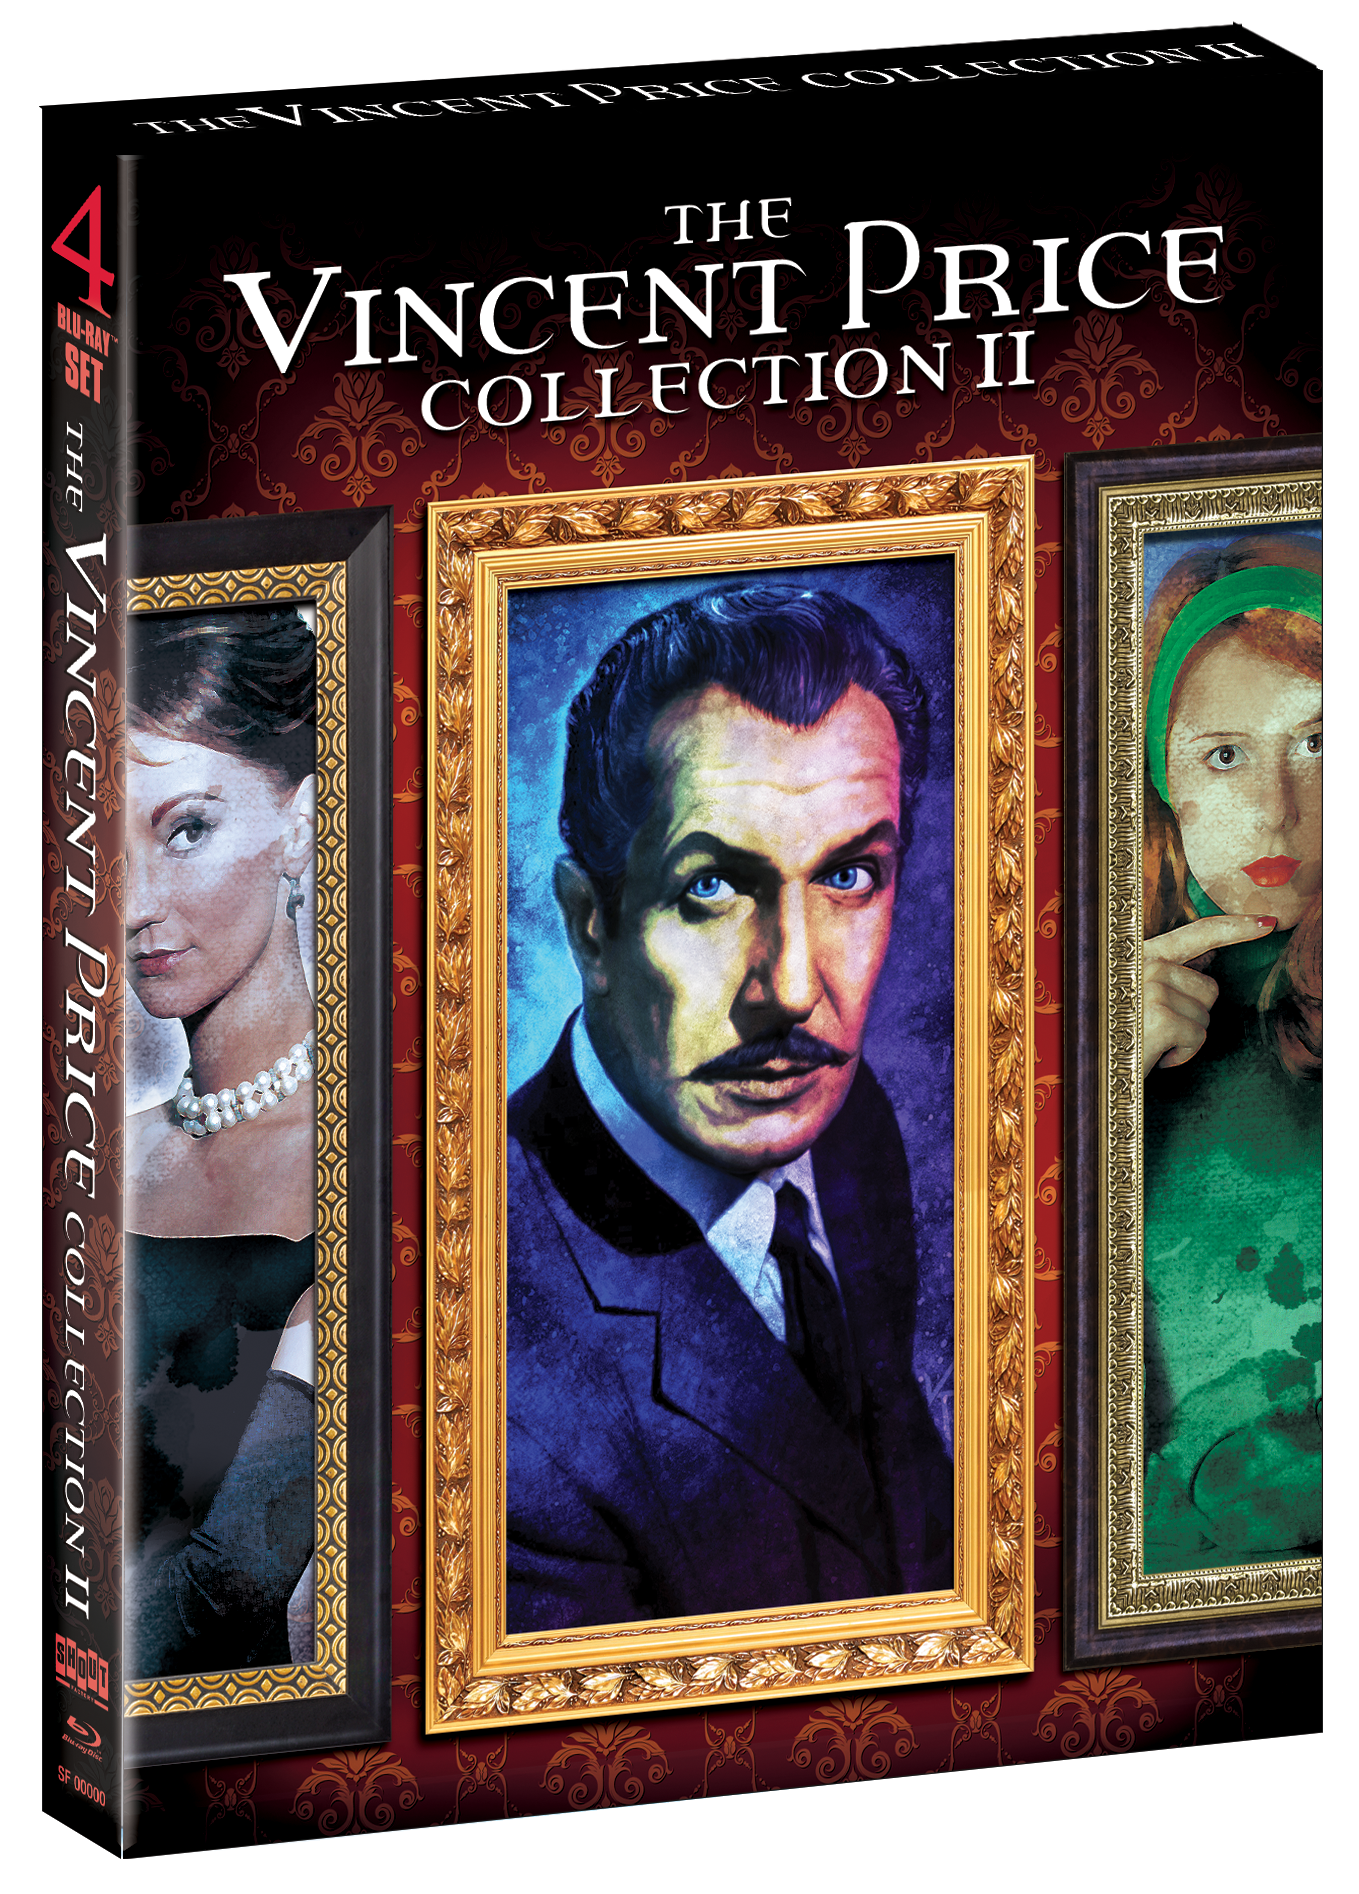 The Vincent Price Collection II